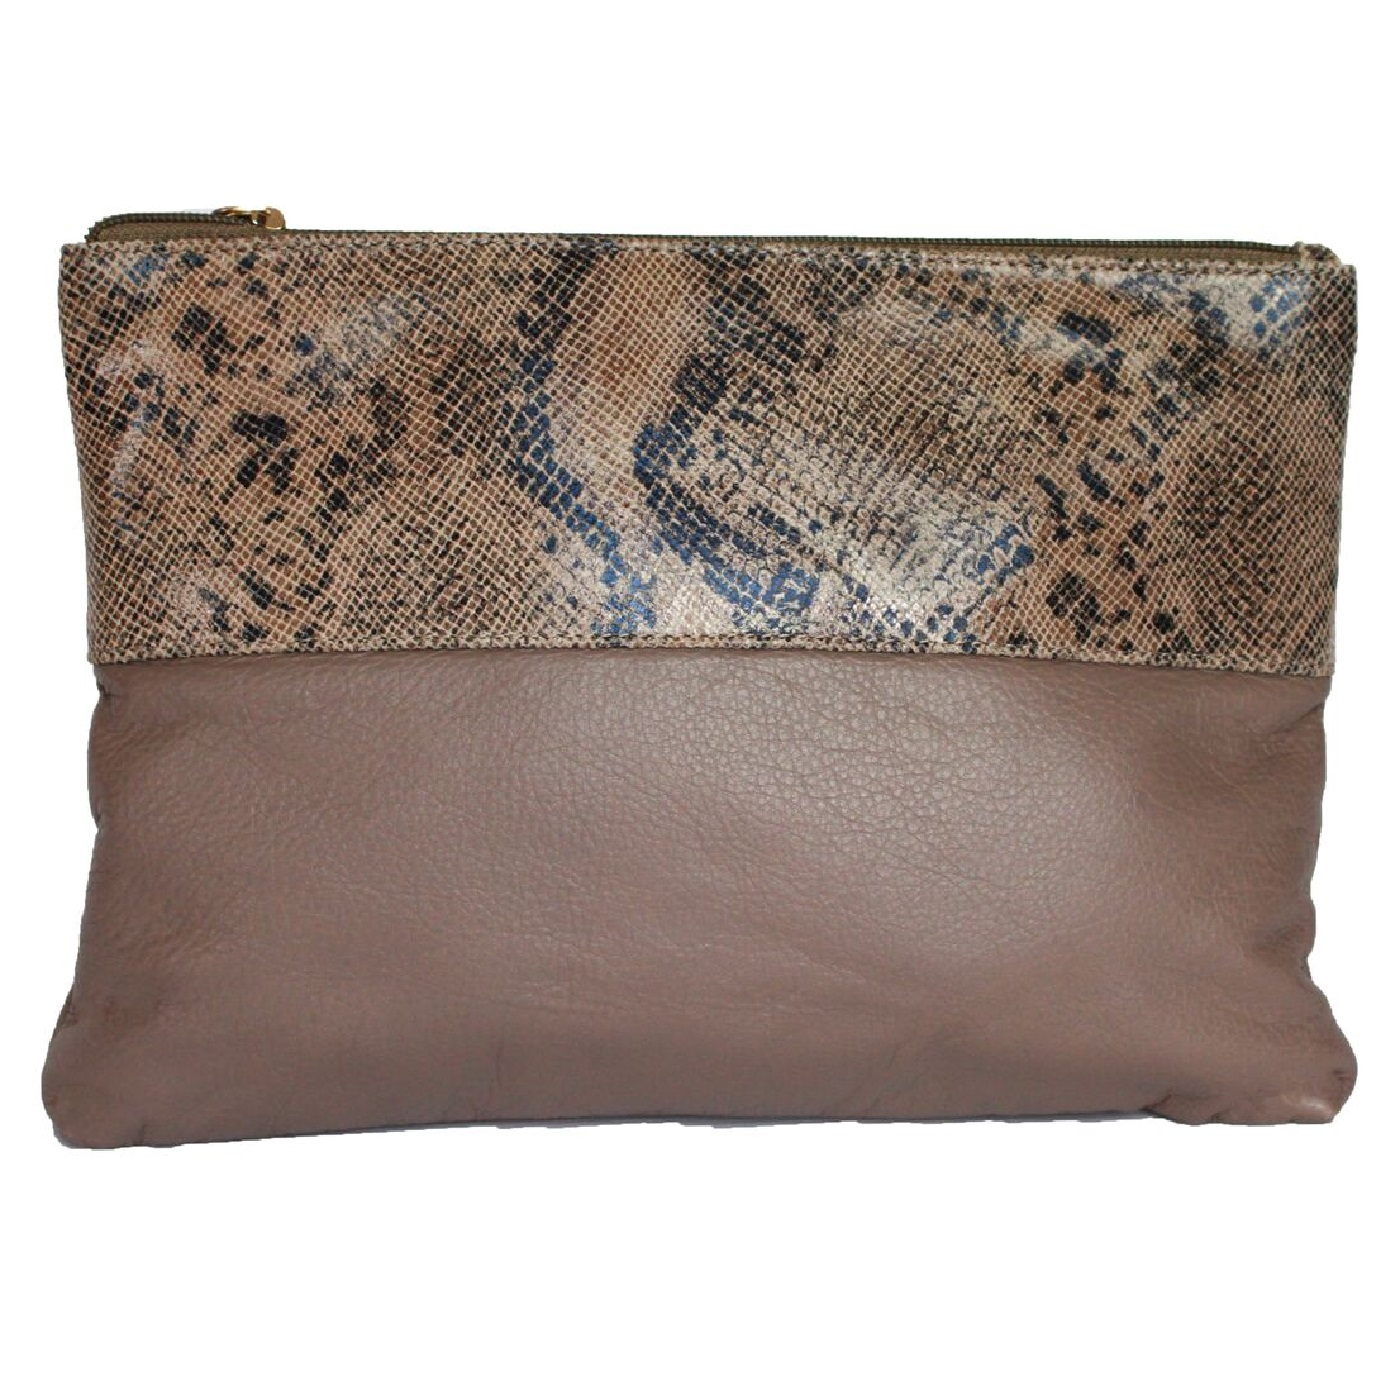 Eastern Counties Leather Womens/Ladies Courtney Clutch Bag (One size) (Taupe/Beige Foil)